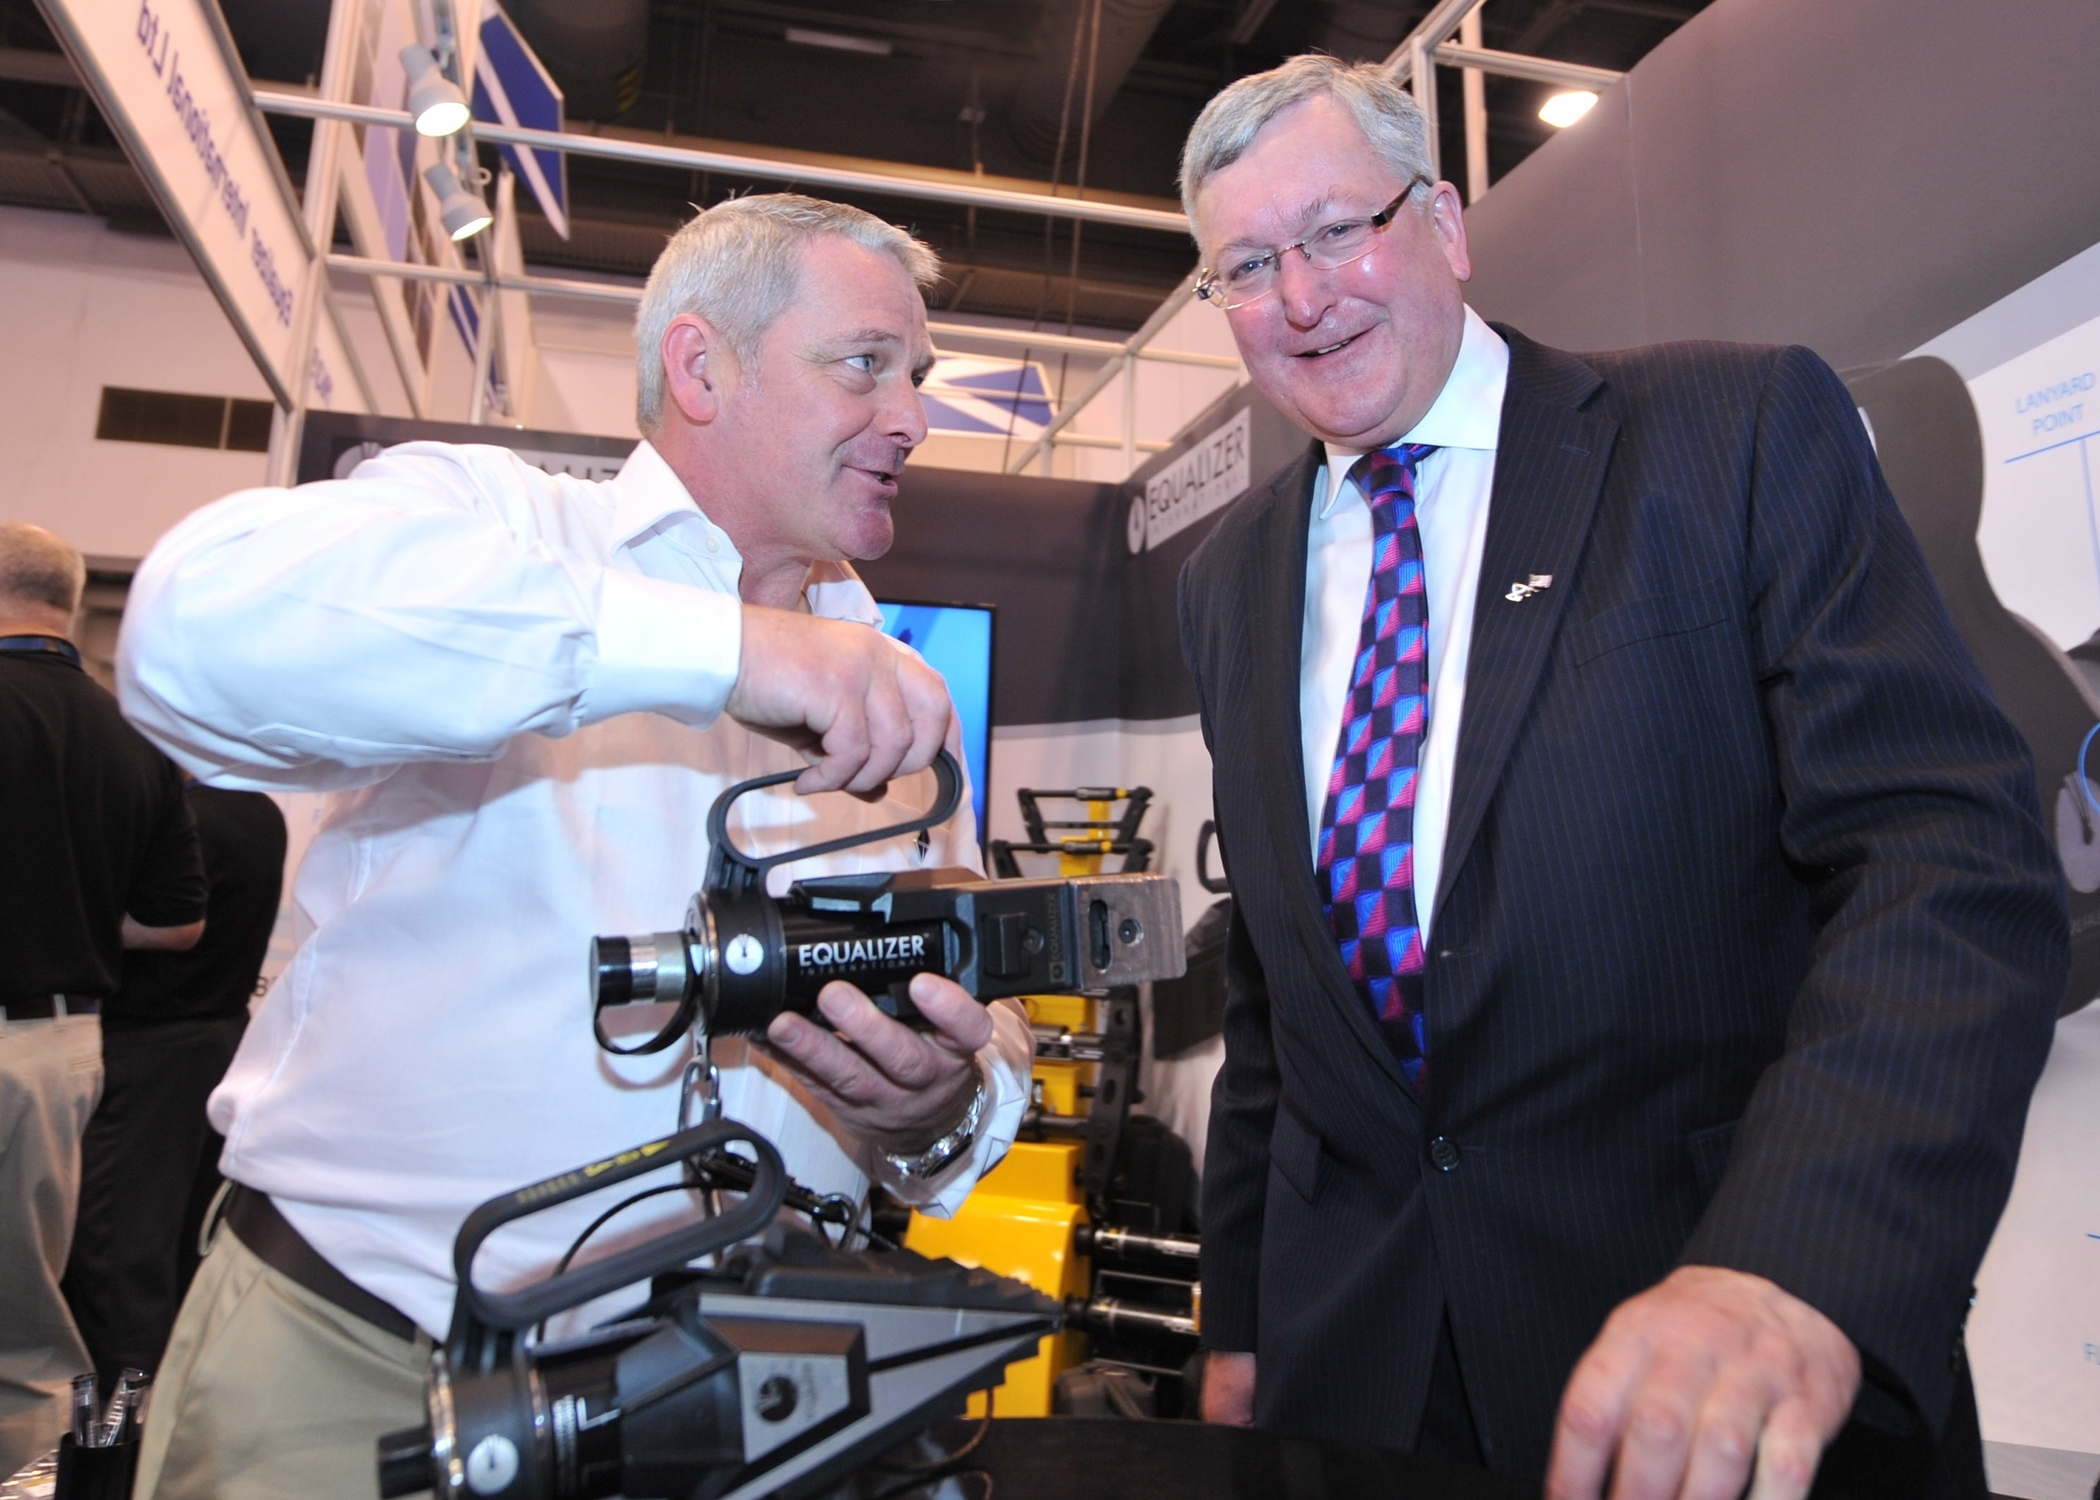 Bob Stephen, technical director with Equalizer International, shows off one of his company's tools to Scotland's Energy Minister Fergus Ewing at OTC. Picture by Barchfeld Photography.